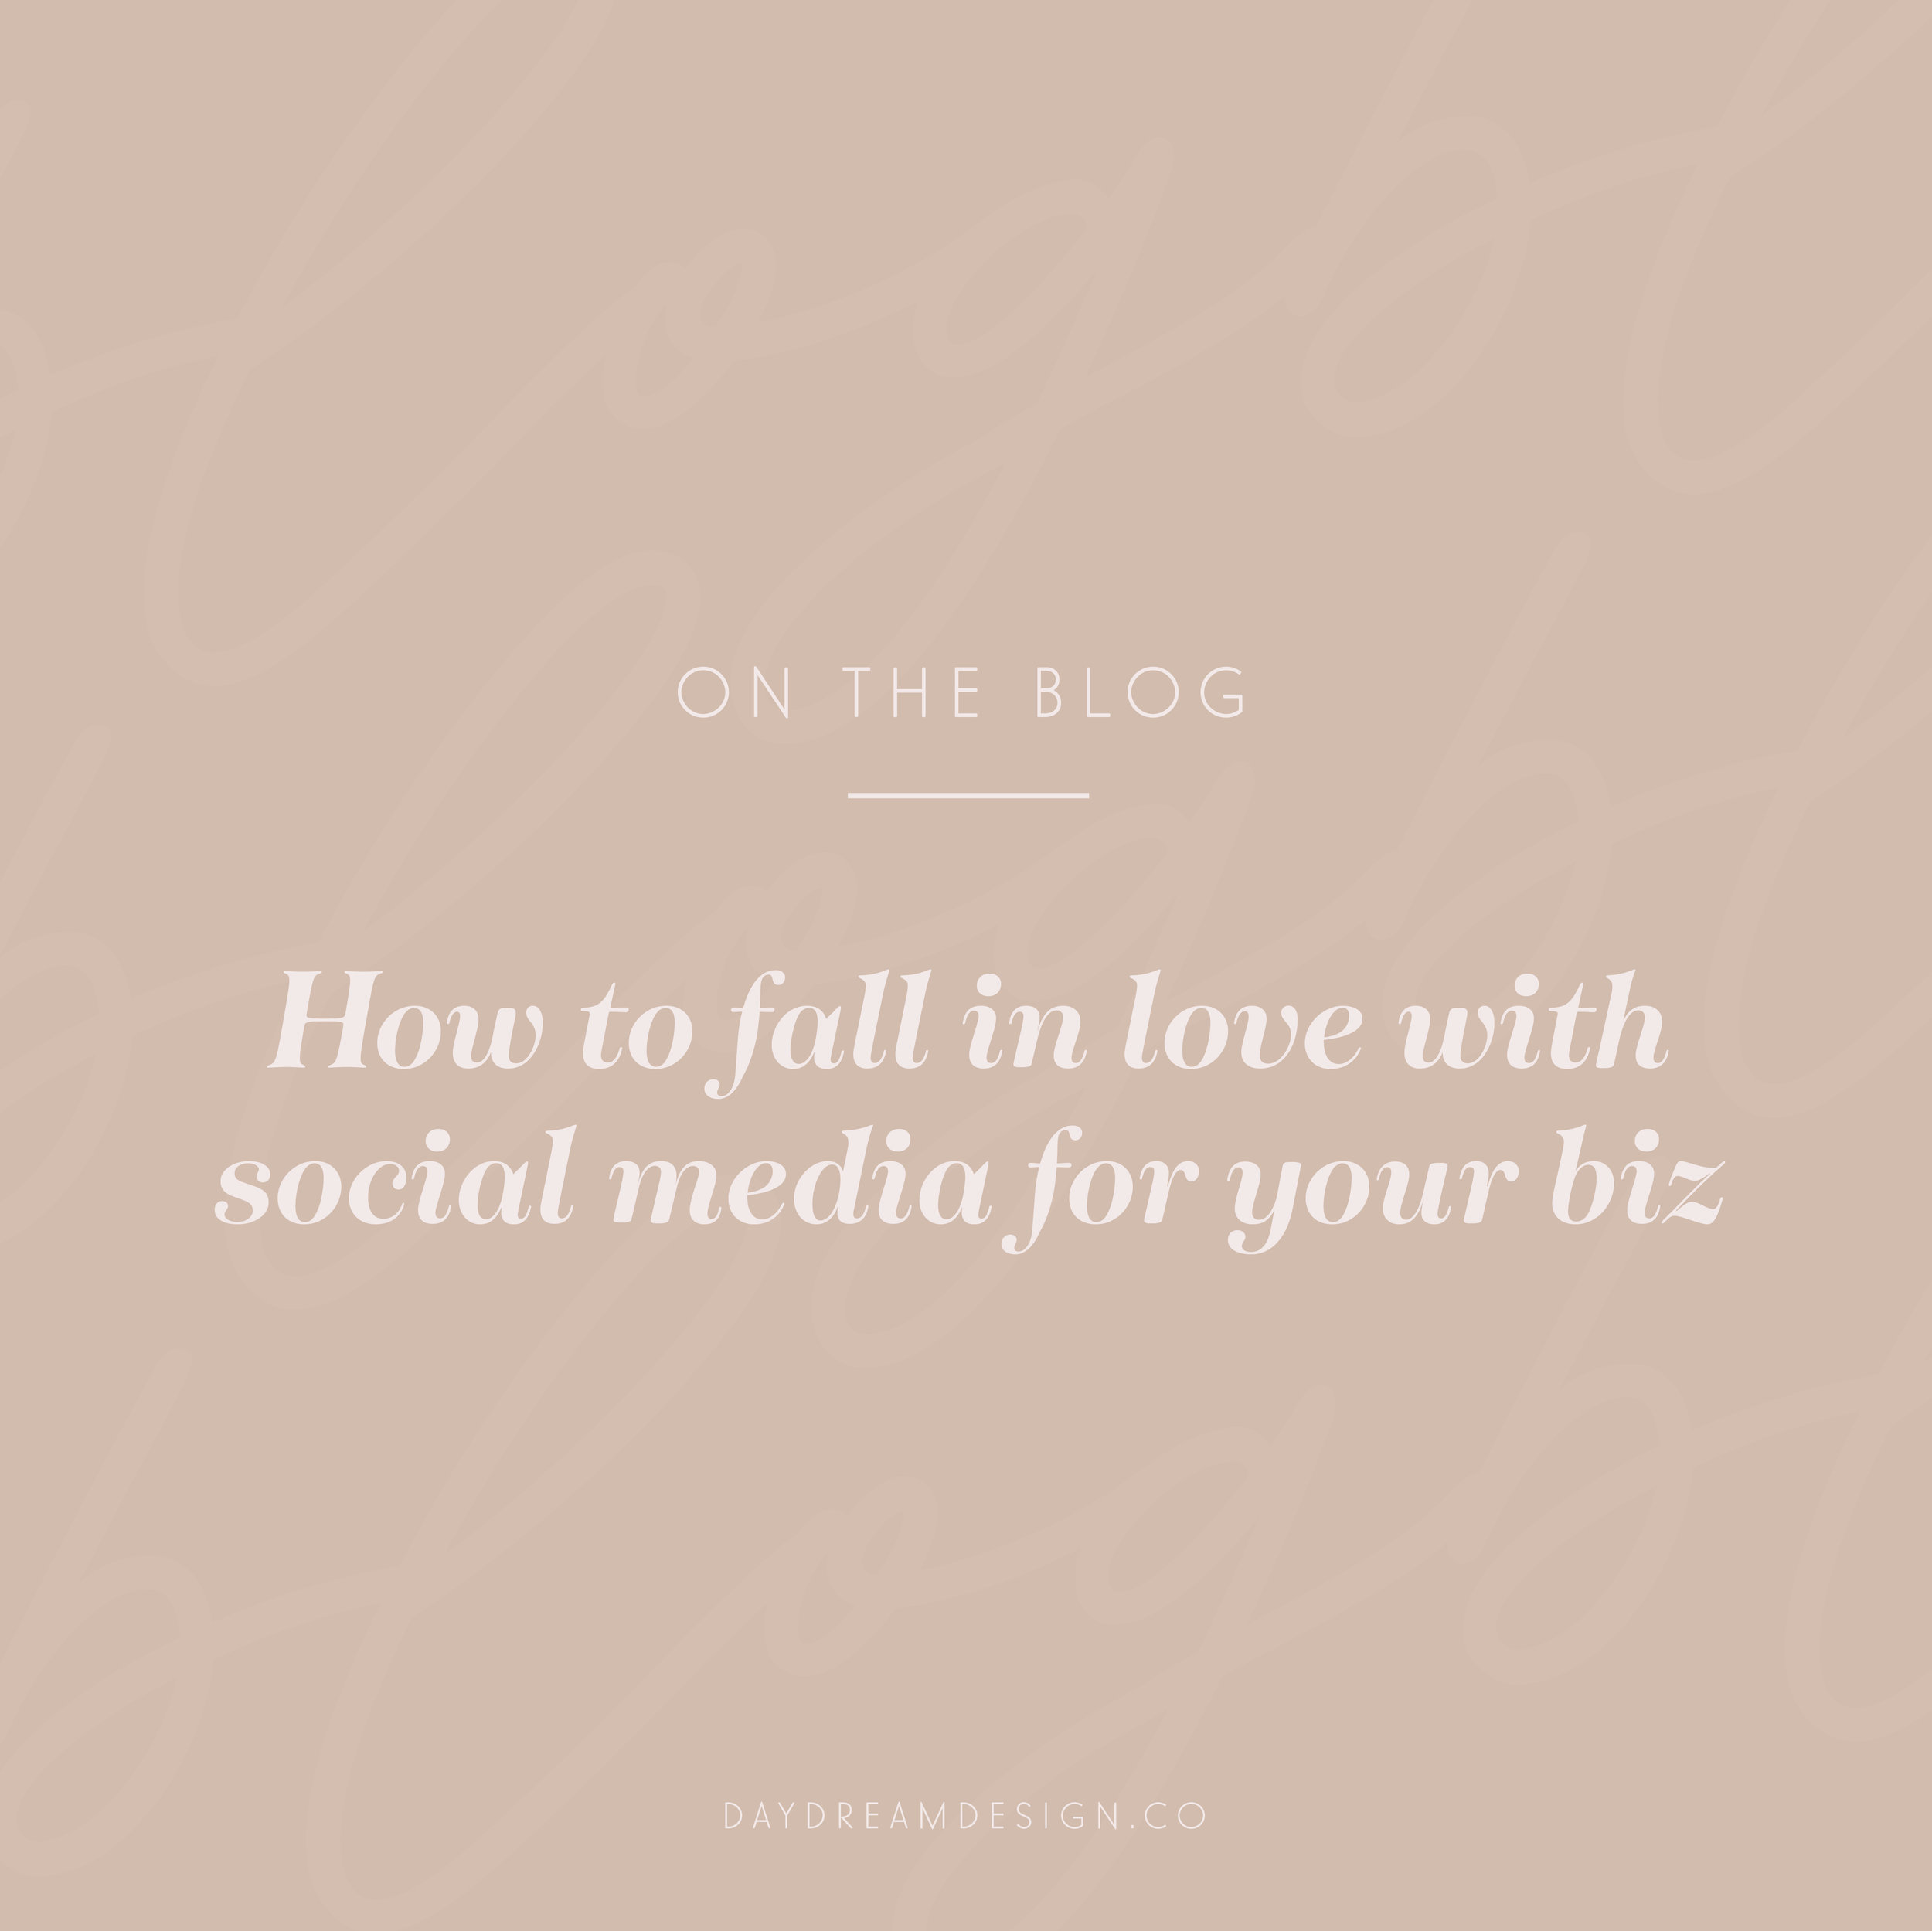 blogpost-fall-in-love-with-social-media-for-your-biz-05.jpg